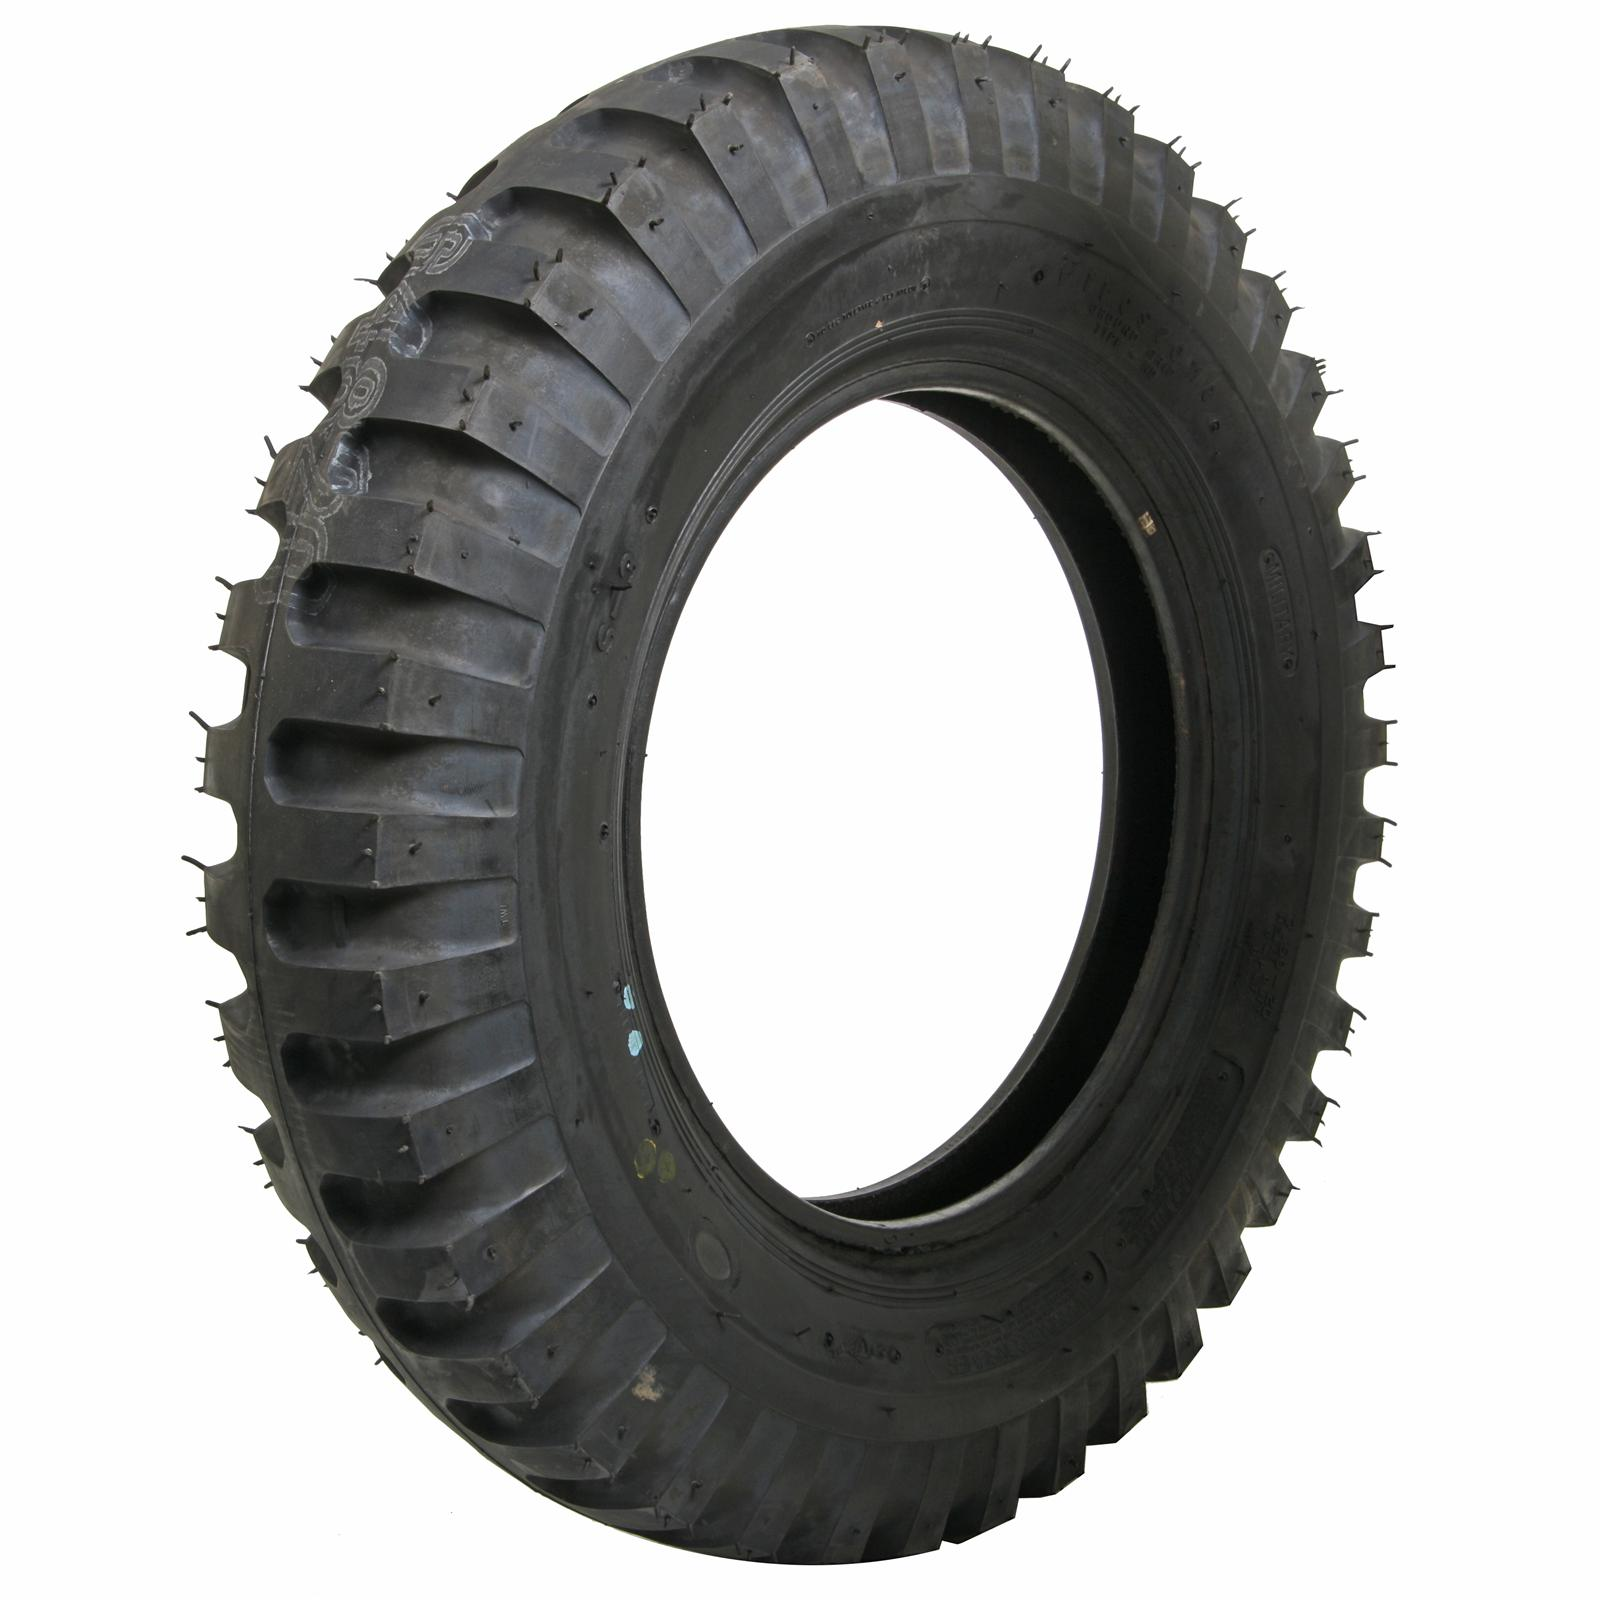 Nebraska Tire offers quality tires for pickup trucks, passenger cars, ATV's and UTV's, semi trucks, tractors, combines, and other implements at a cheap and affordable price.